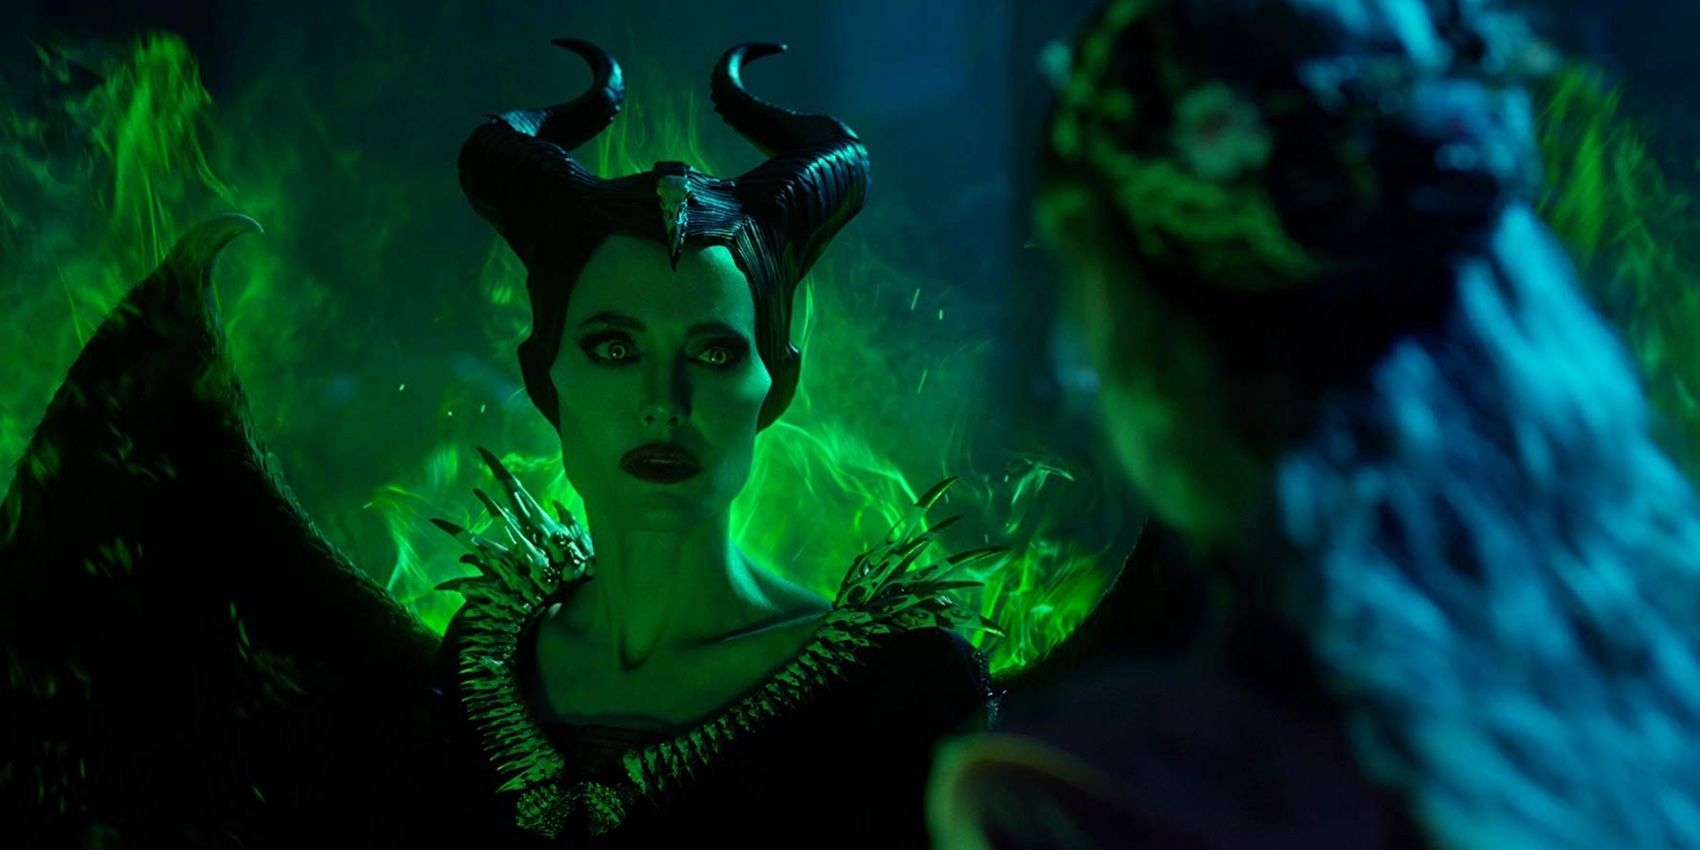 Maleficent 2 Opening Weekend Box Office Almost Half Of First